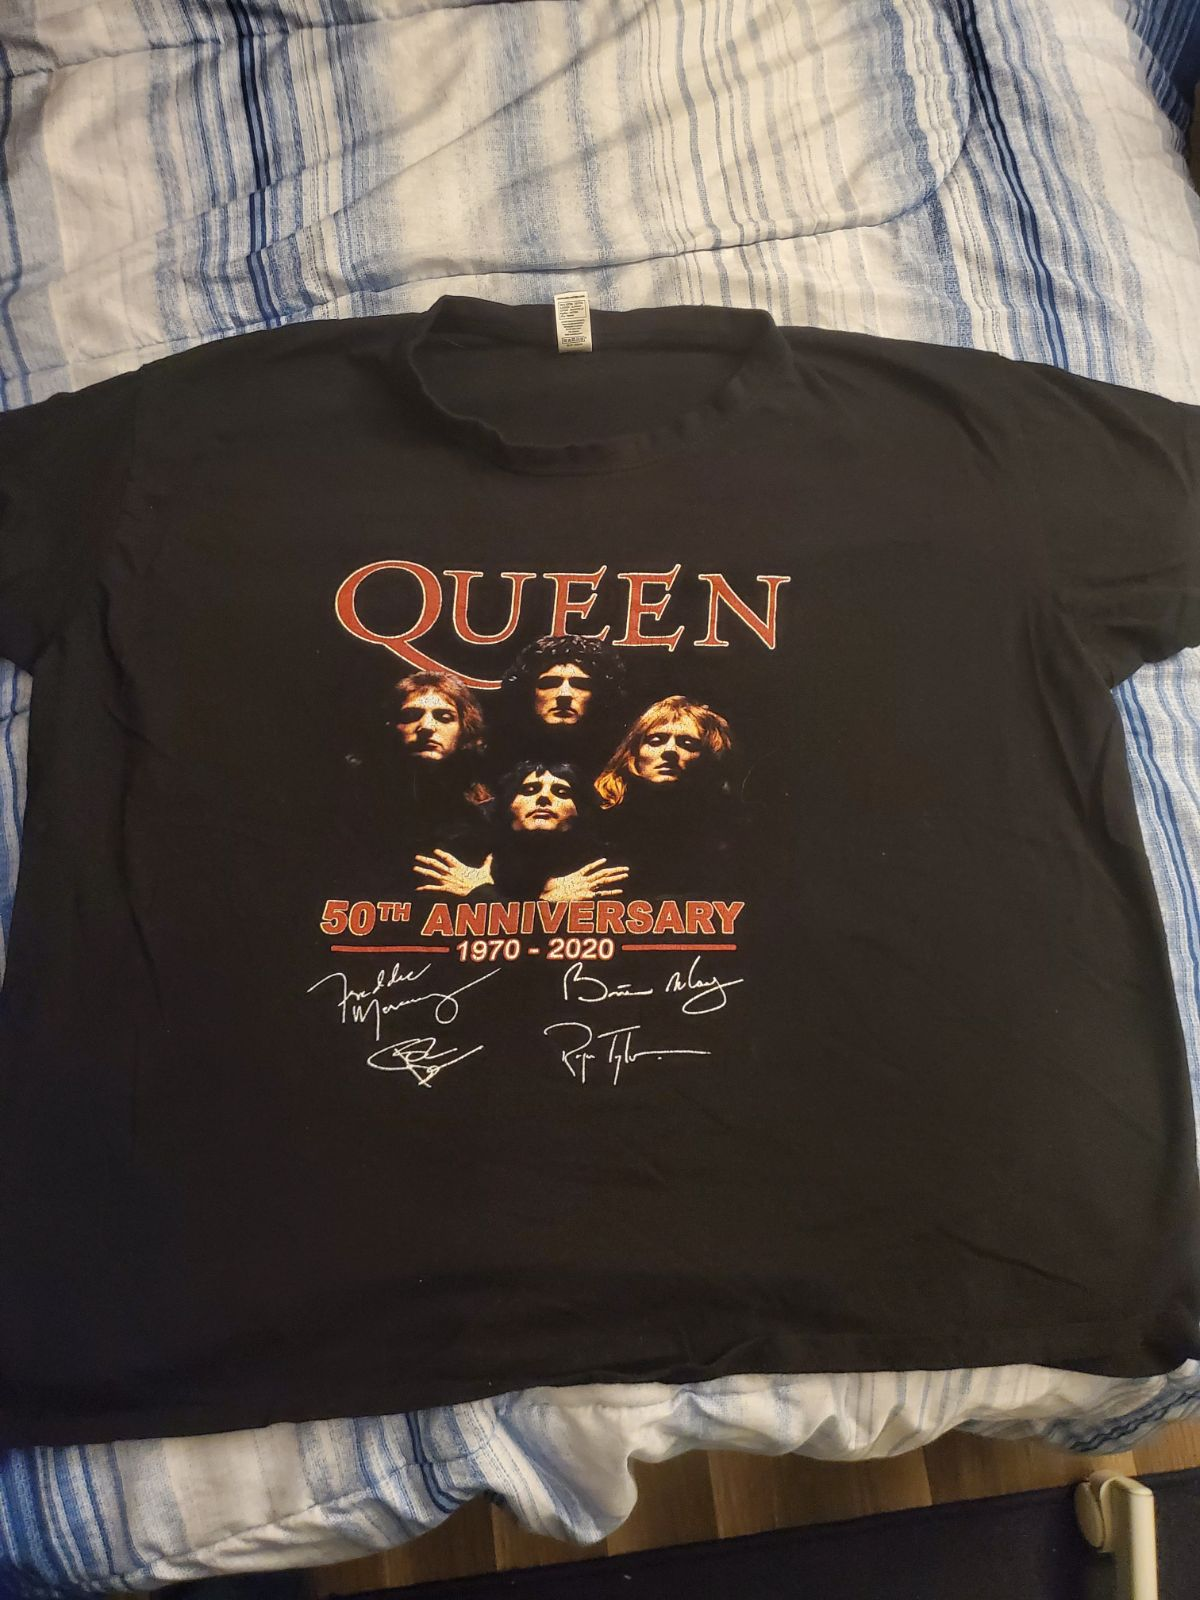 Queen 50th Anniversary shirt